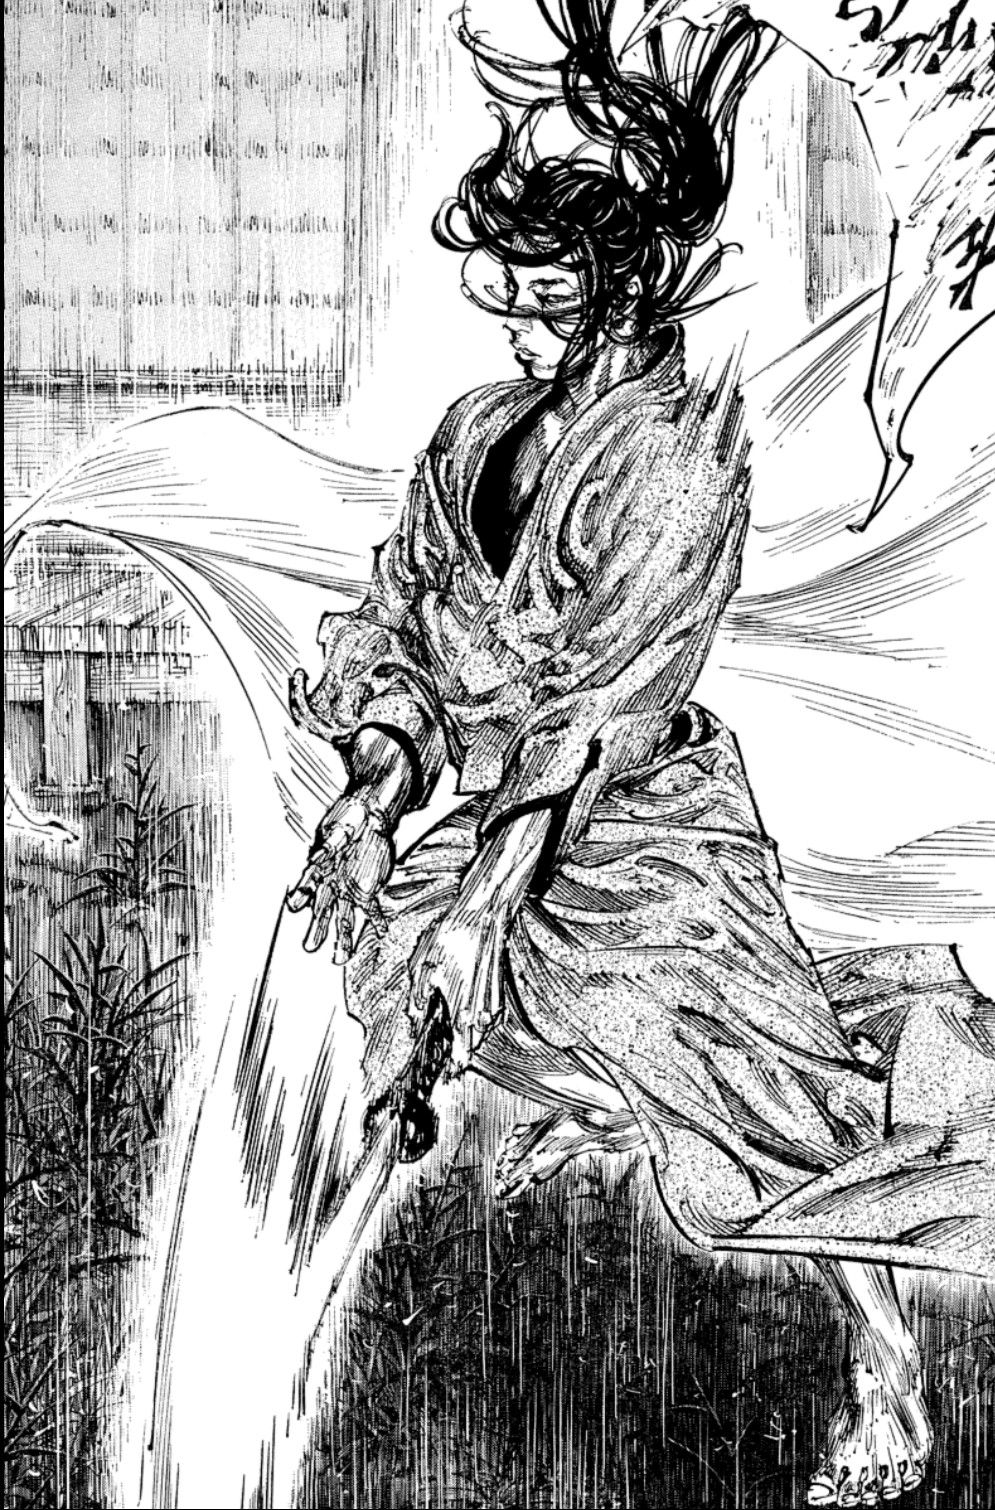 Pin by Inio Asano on Manga Vagabond (With images ...